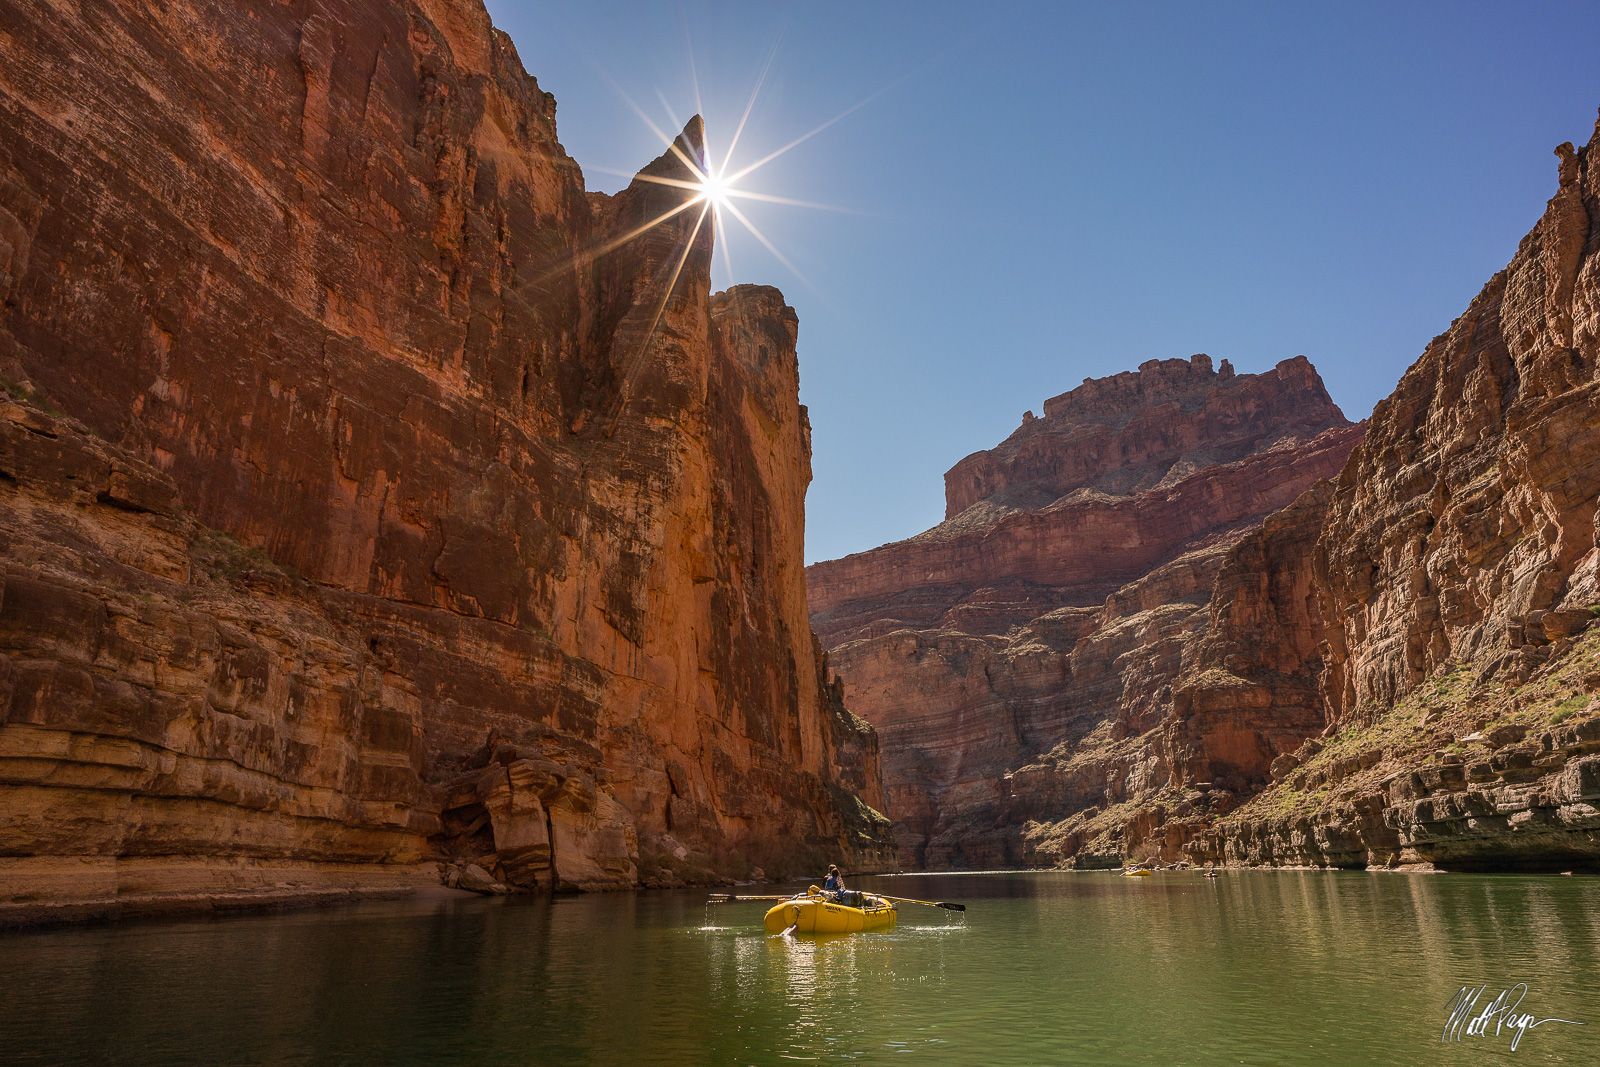 Grand Canyon National Park, Arizona, Colorado River, Rafting, River, Sandstone, water,  sunstar, photo